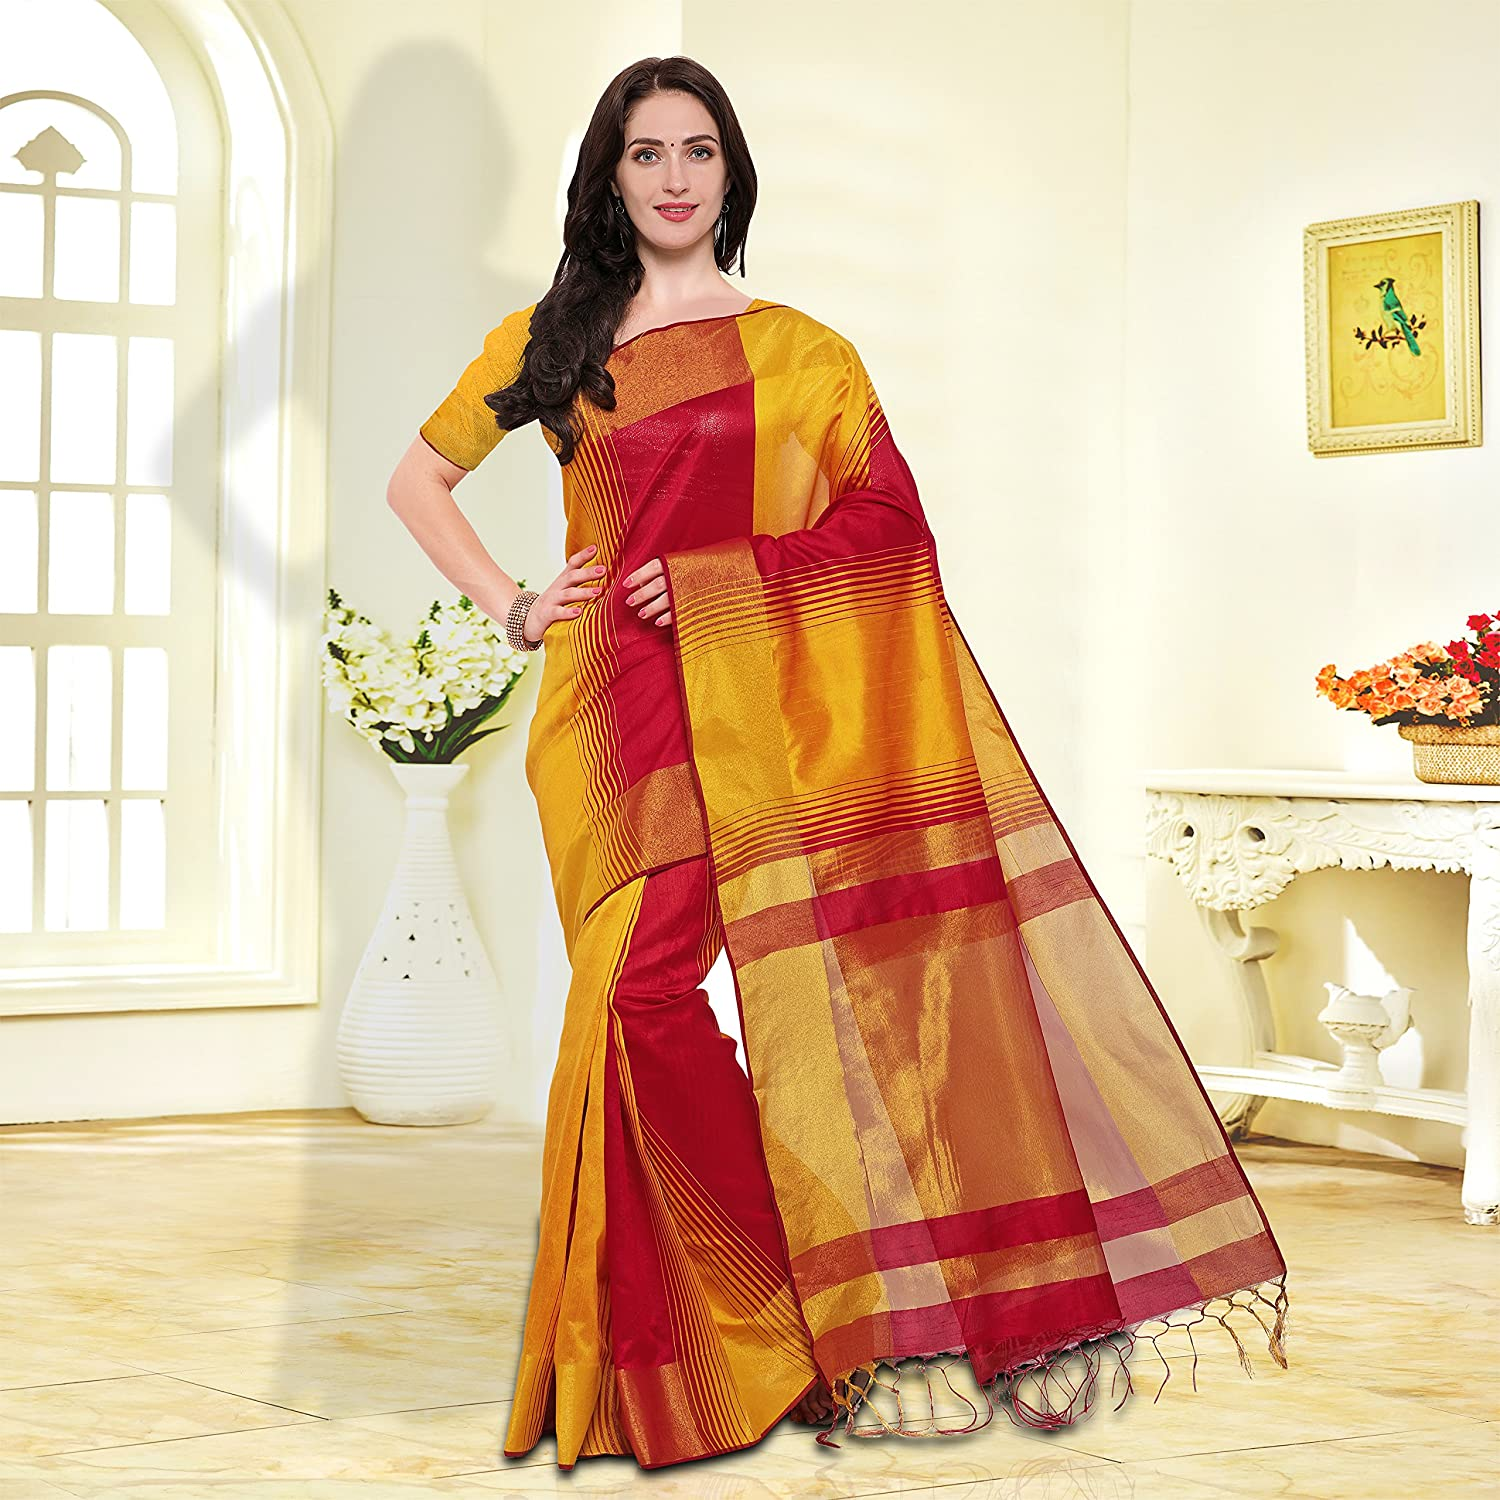 49942079bb185 SAREE MALL Women S Cotton Silk Saree With Blouse Piece (Yellow   Red Free  Size )  Amazon.in  Clothing   Accessories